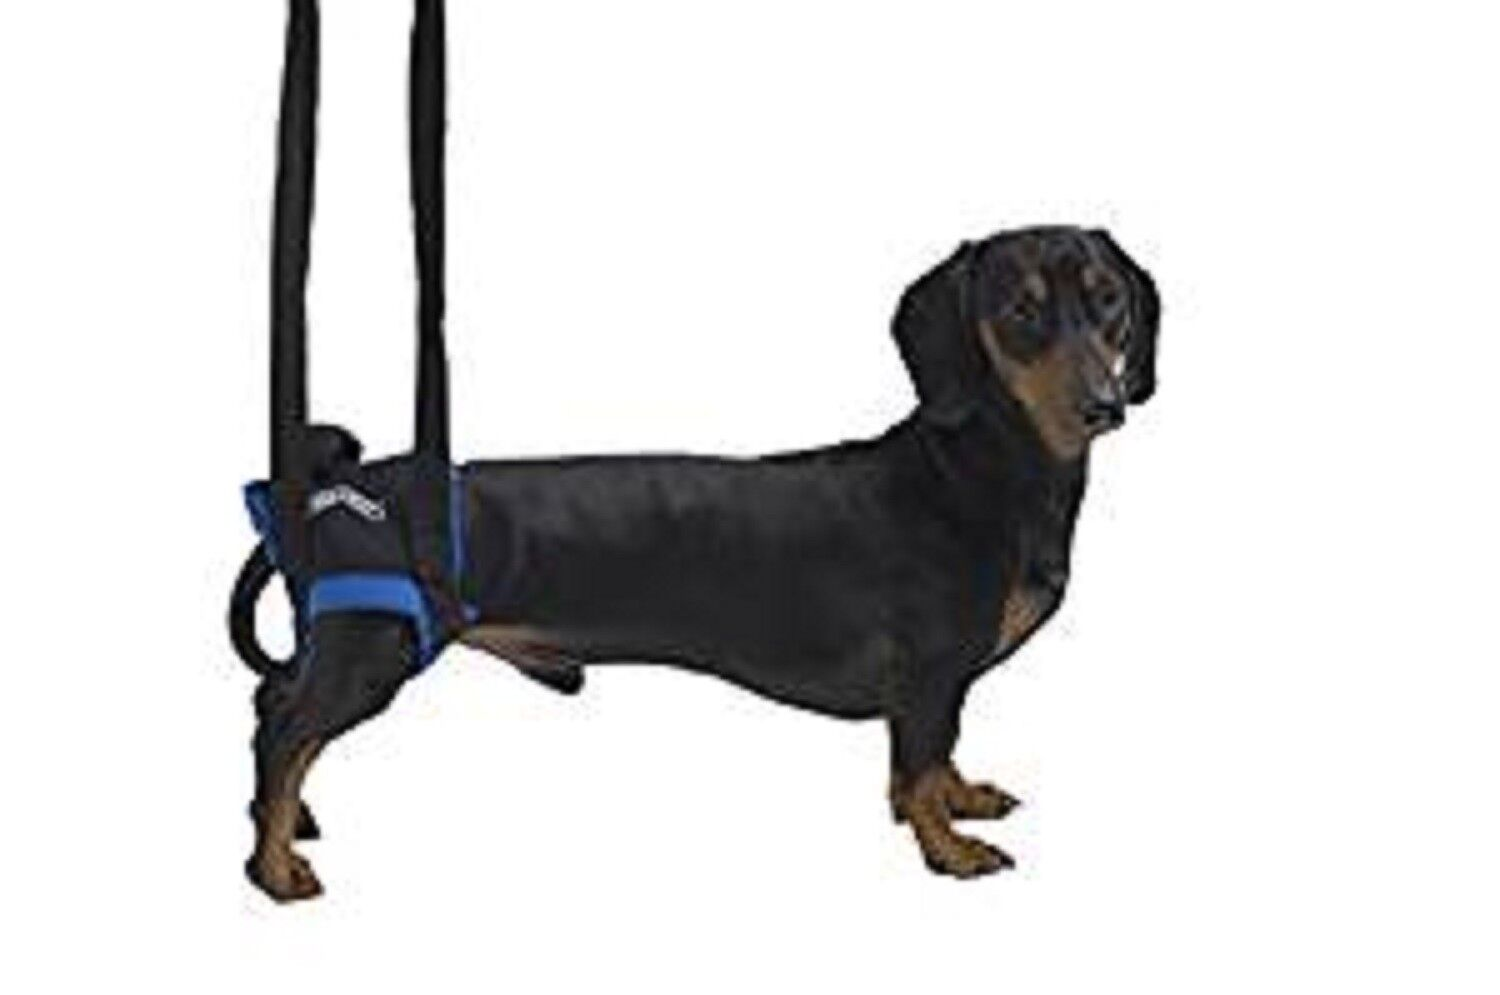 Kruuse Walkabout Hind Legs Harness, Medium Large, Premium Service, Fast Dispatch